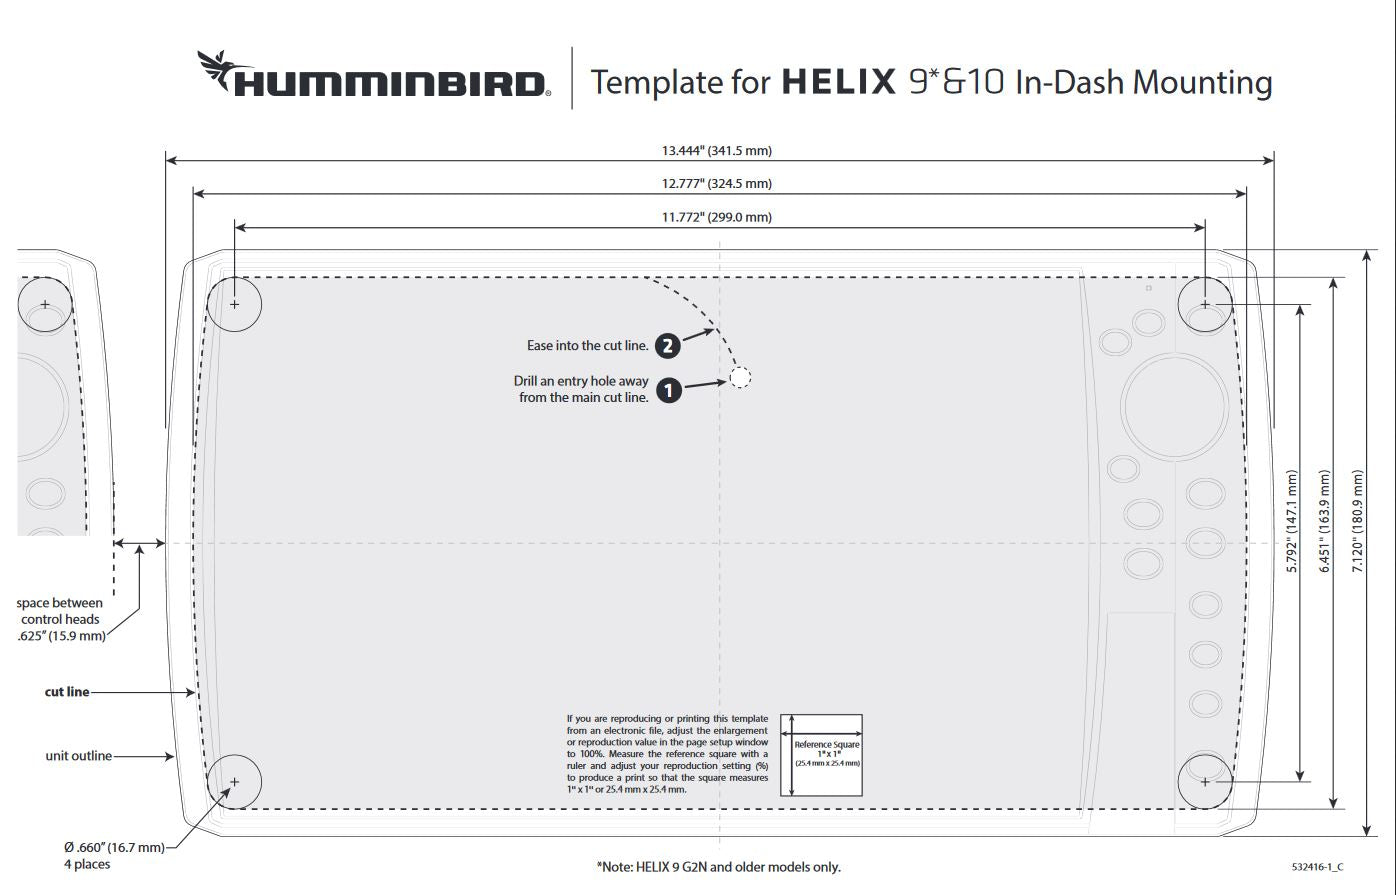 In dash mounting template for humminbird Helix 10 when flush mounting it. Shows the size of the hole to cut.